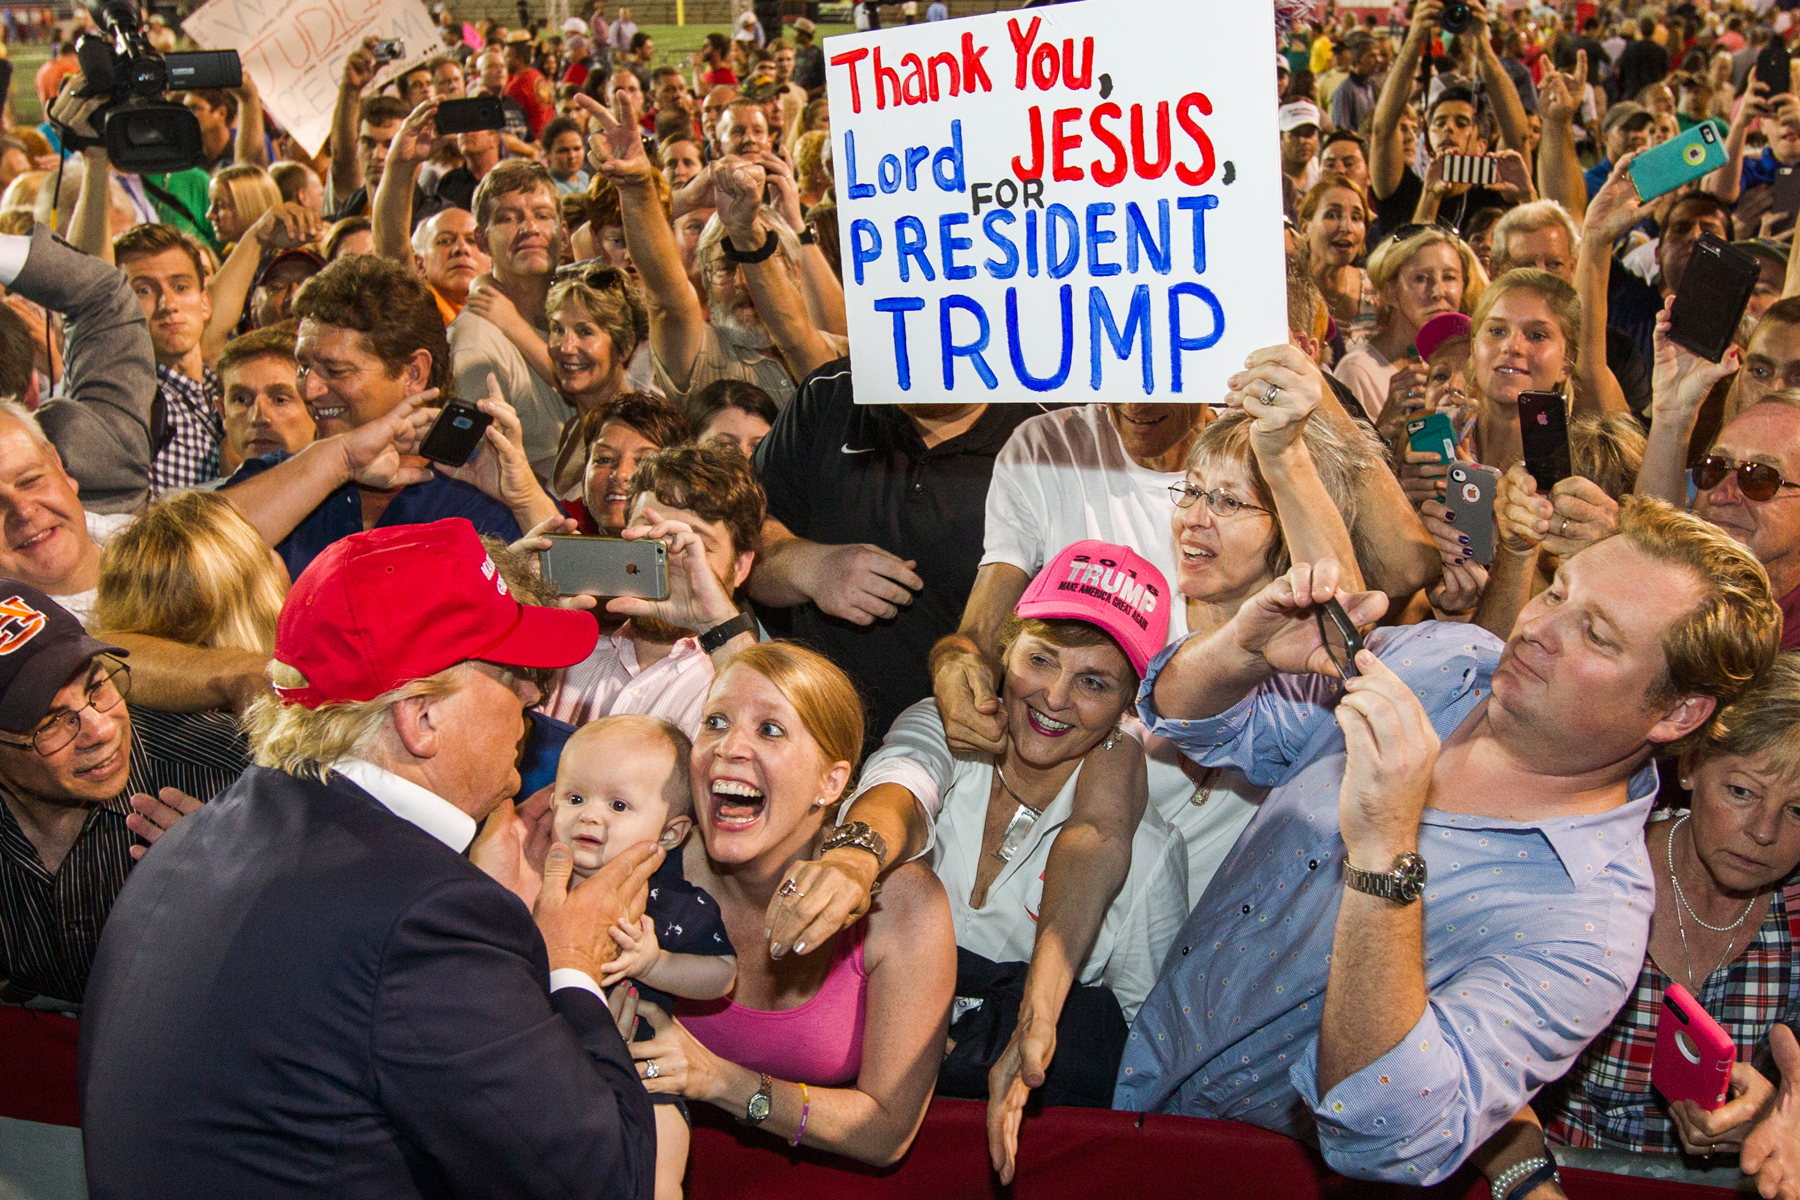 Republican presidential candidate Donald Trump greets supporters after his rally at Ladd-Peebles Stadium on August 21, 2015 in Mobile, Alabama. The Trump campaign moved tonight's rally to a larger stadium to accommodate demand.